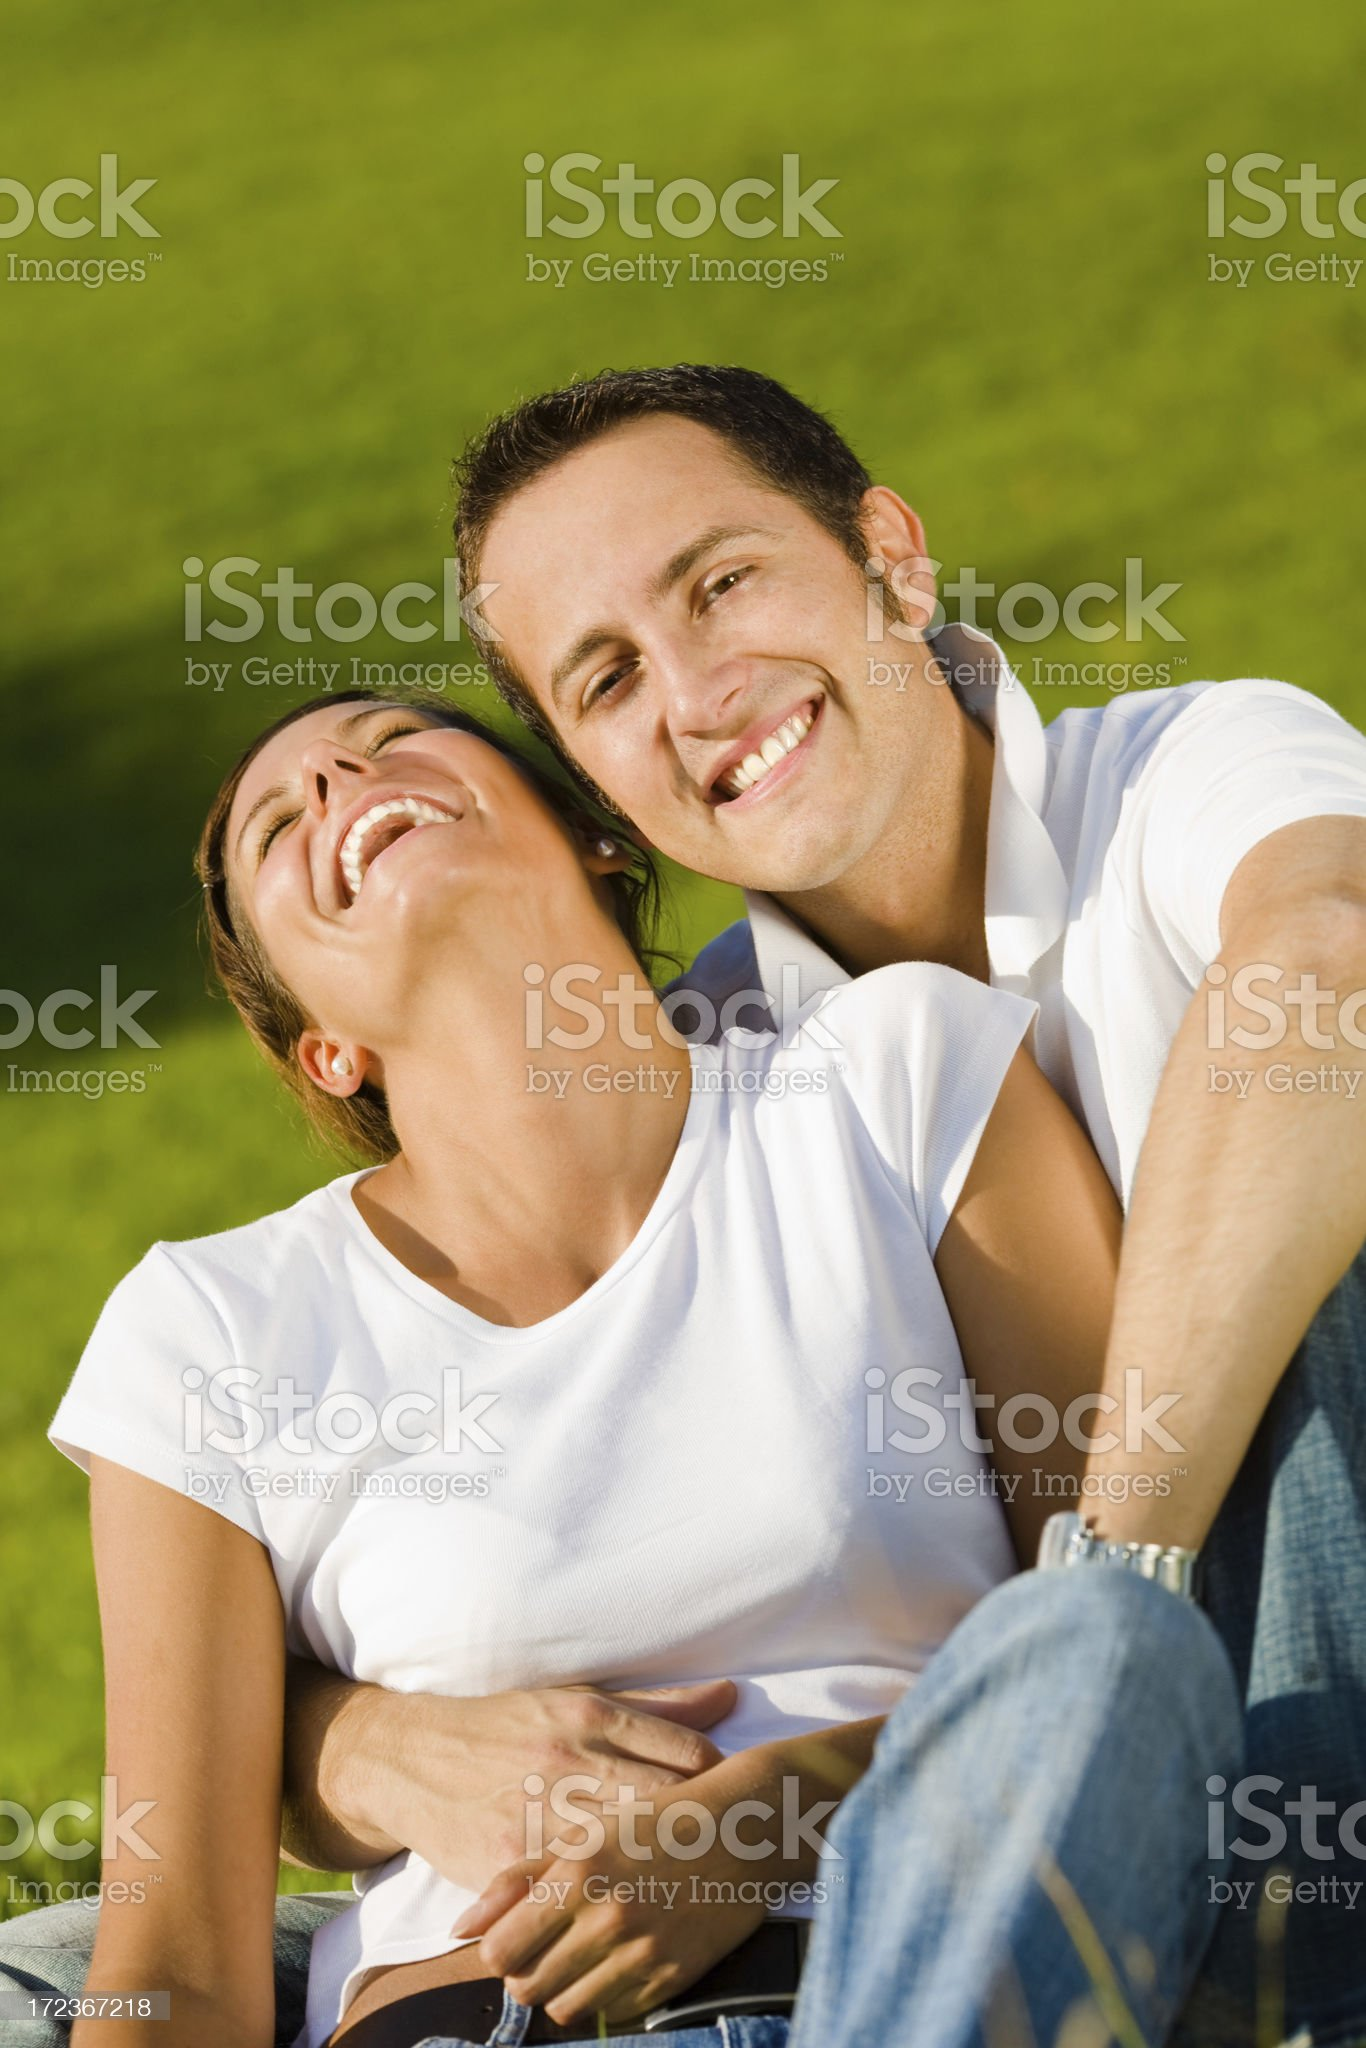 young beautiful couple laughs and hugs in grass field royalty-free stock photo